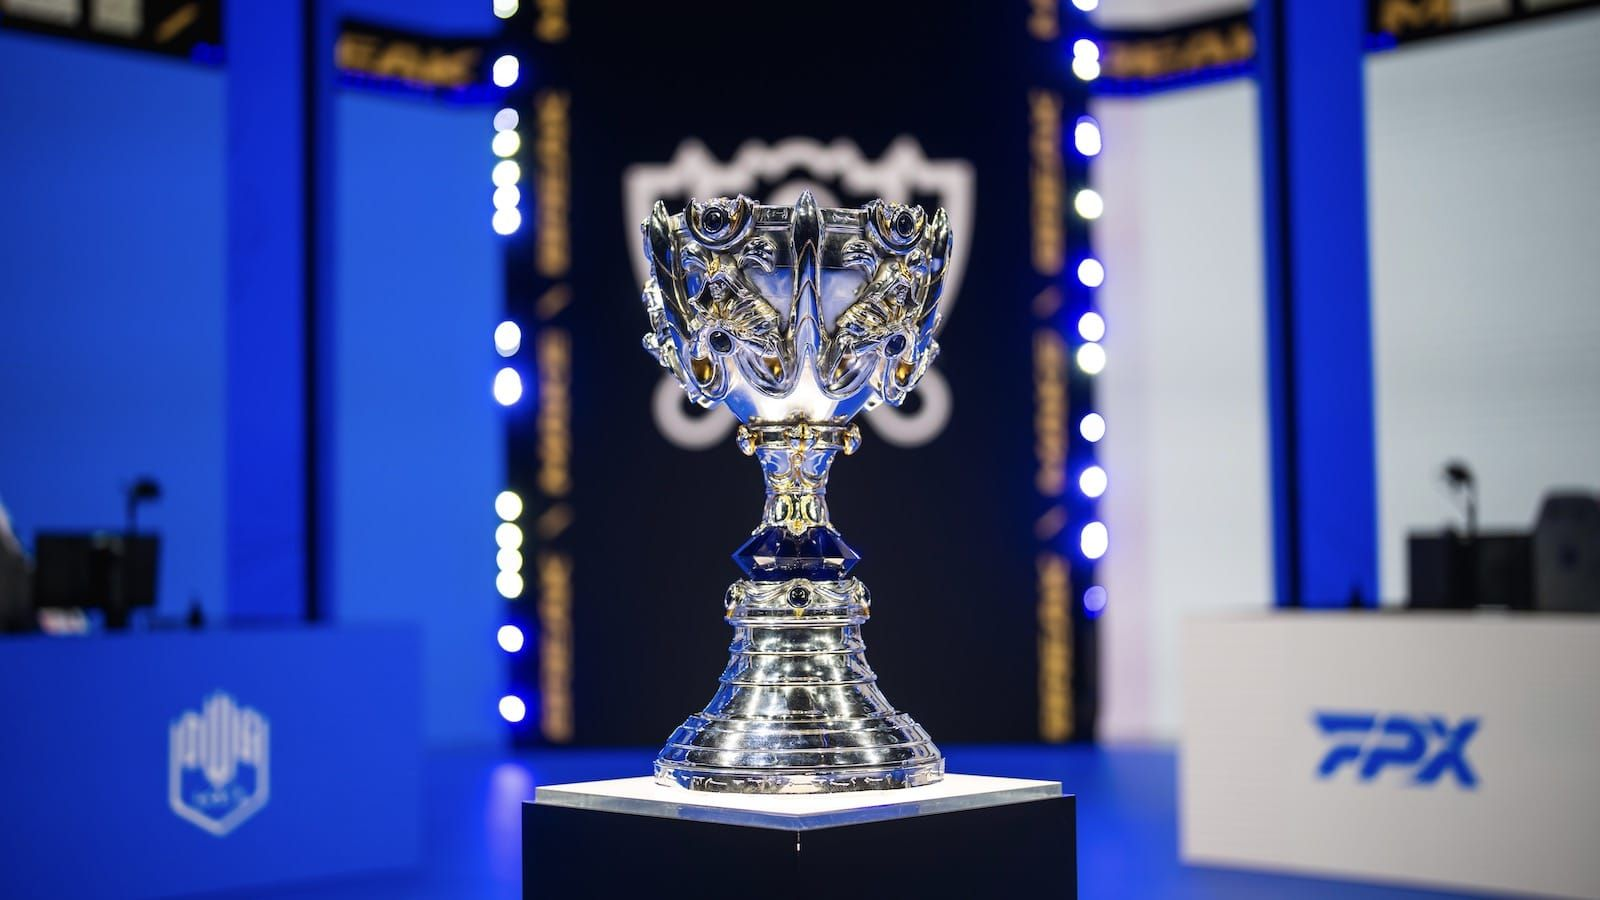 The Summoner's Cup trophy sits on stage before a match at the 2021 League of Legends World Championship